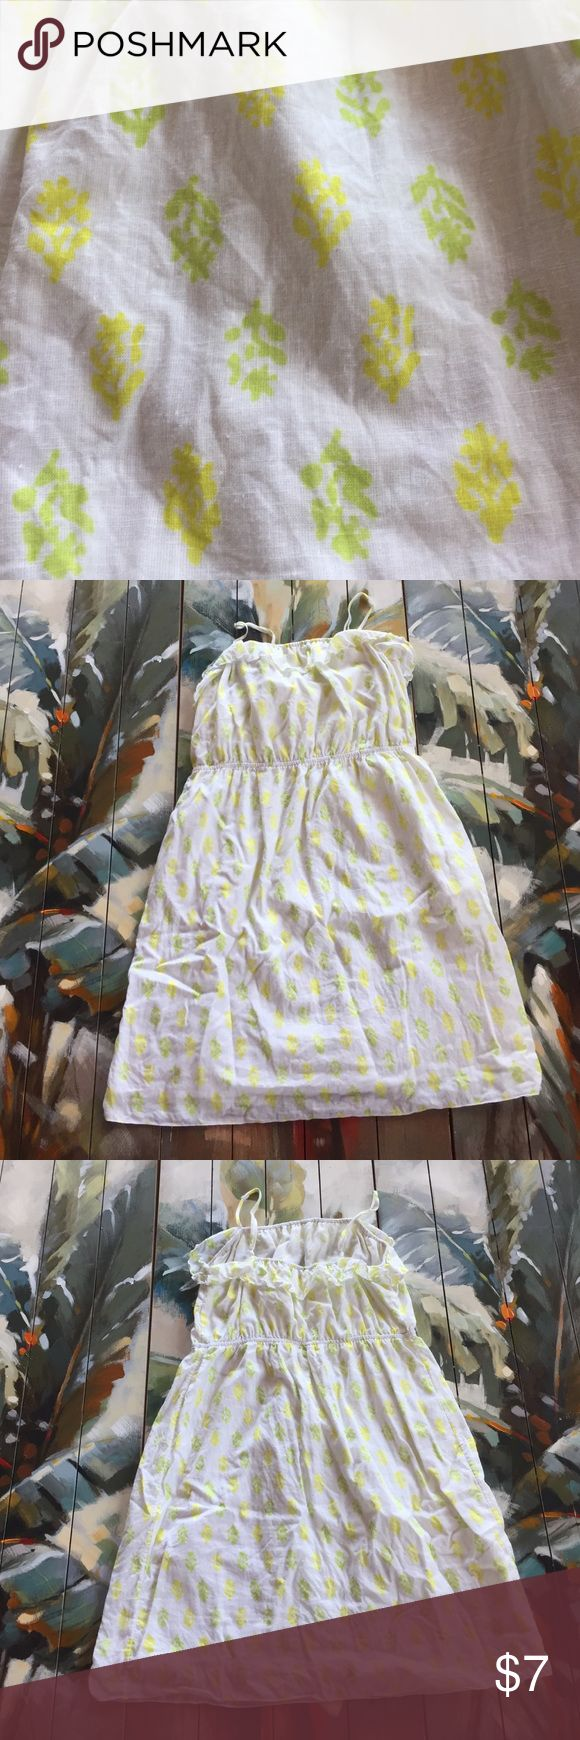 "Old Navy Beach Dress, Size Large Casual, beachy Old Navy Dress, white with green and yellow design. Ruffle across top. 34"" long with adjustable spaghetti straps. Old Navy Dresses Mini"